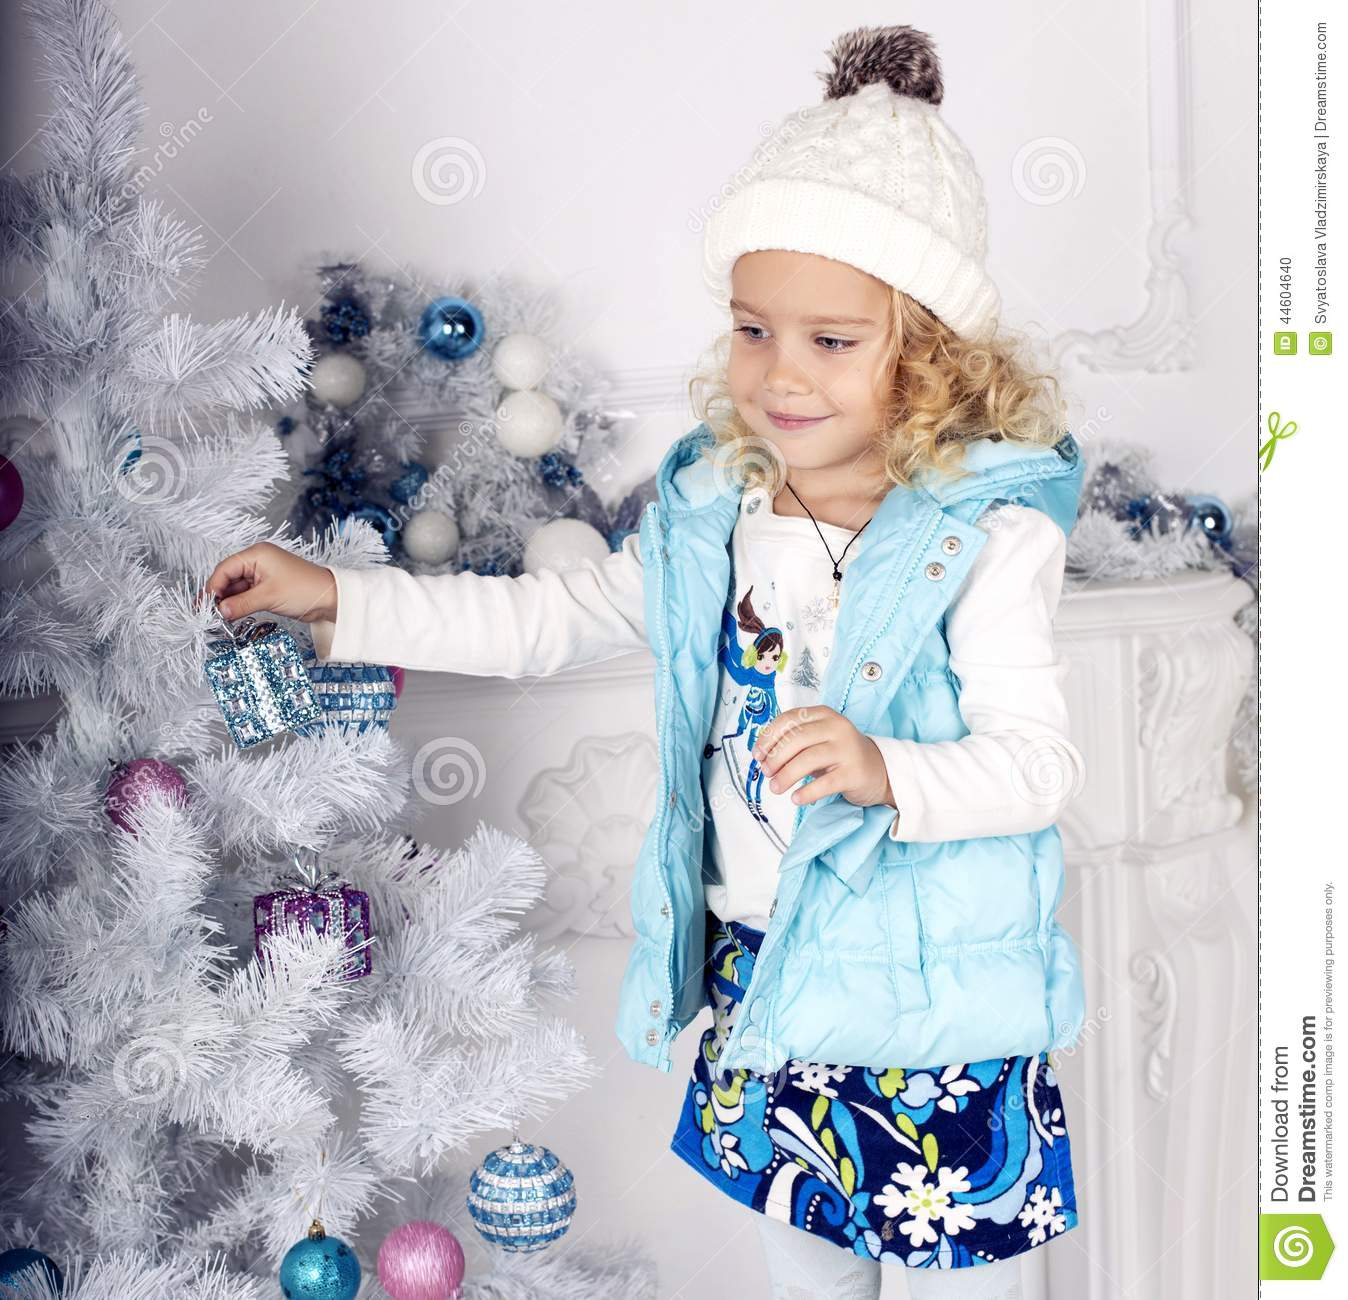 Little Girl Christmas Tree: Cute Little Girl Decorating Christmas Tree Stock Photo